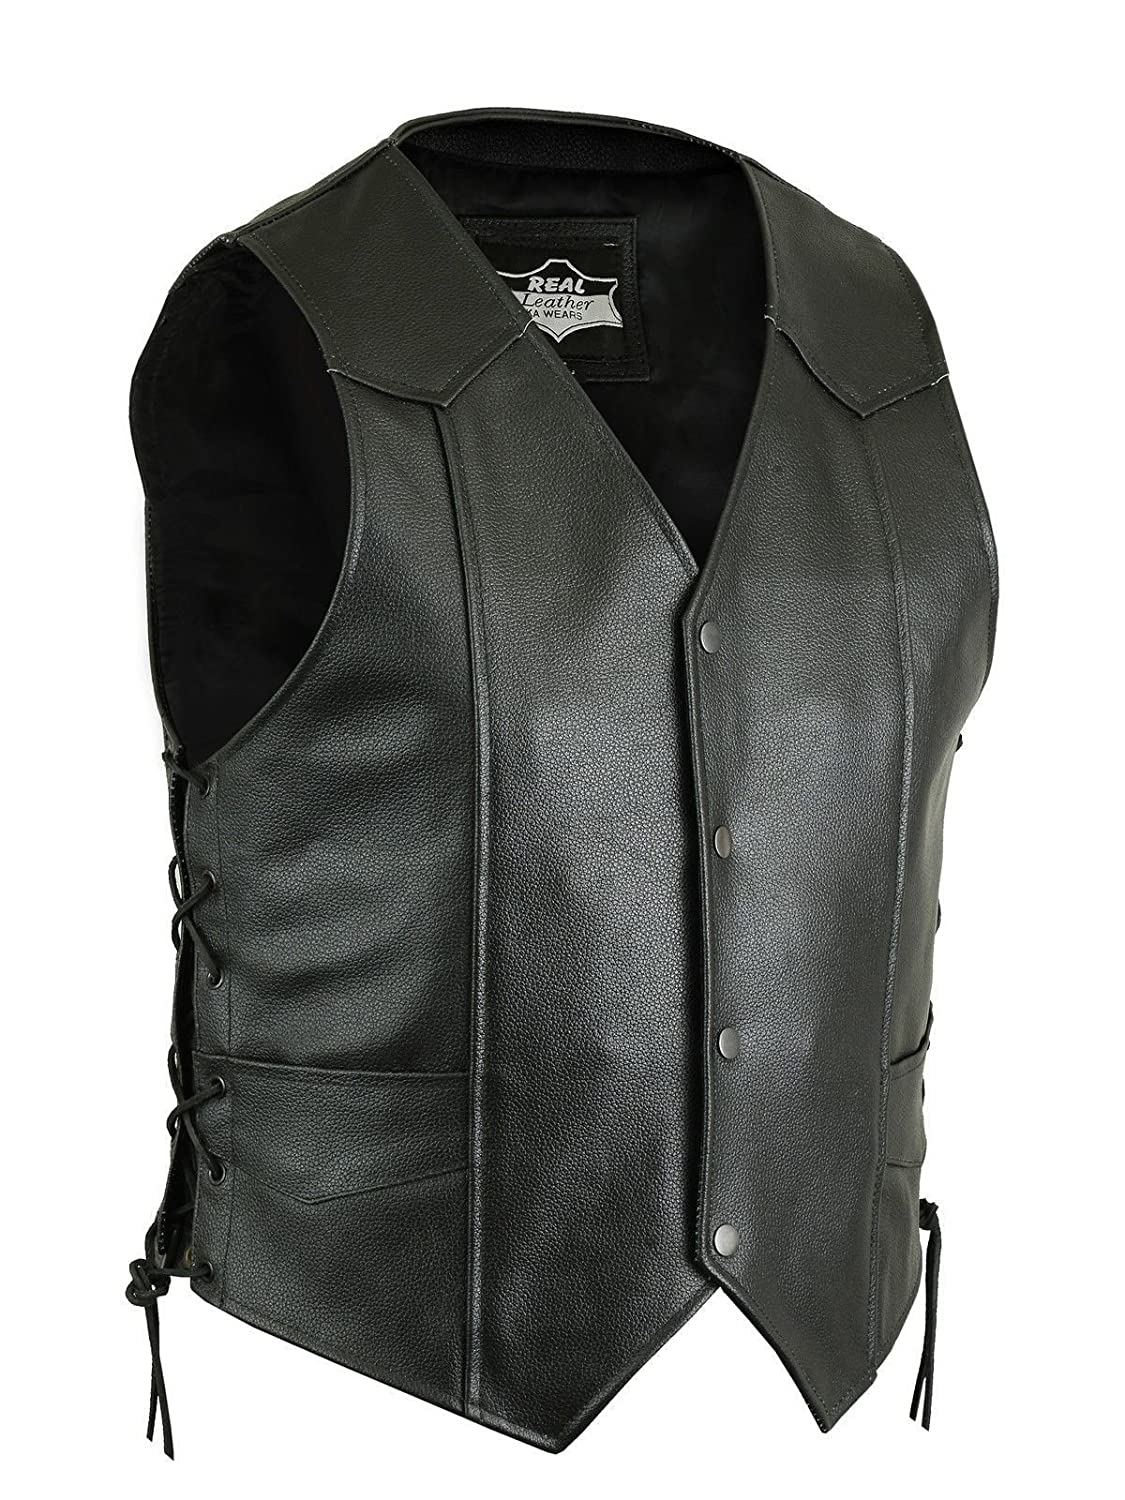 MENS BIKER STYLE VEST REAL COW LEATHER WHITE MOTORCYCLE WAISTCOAT